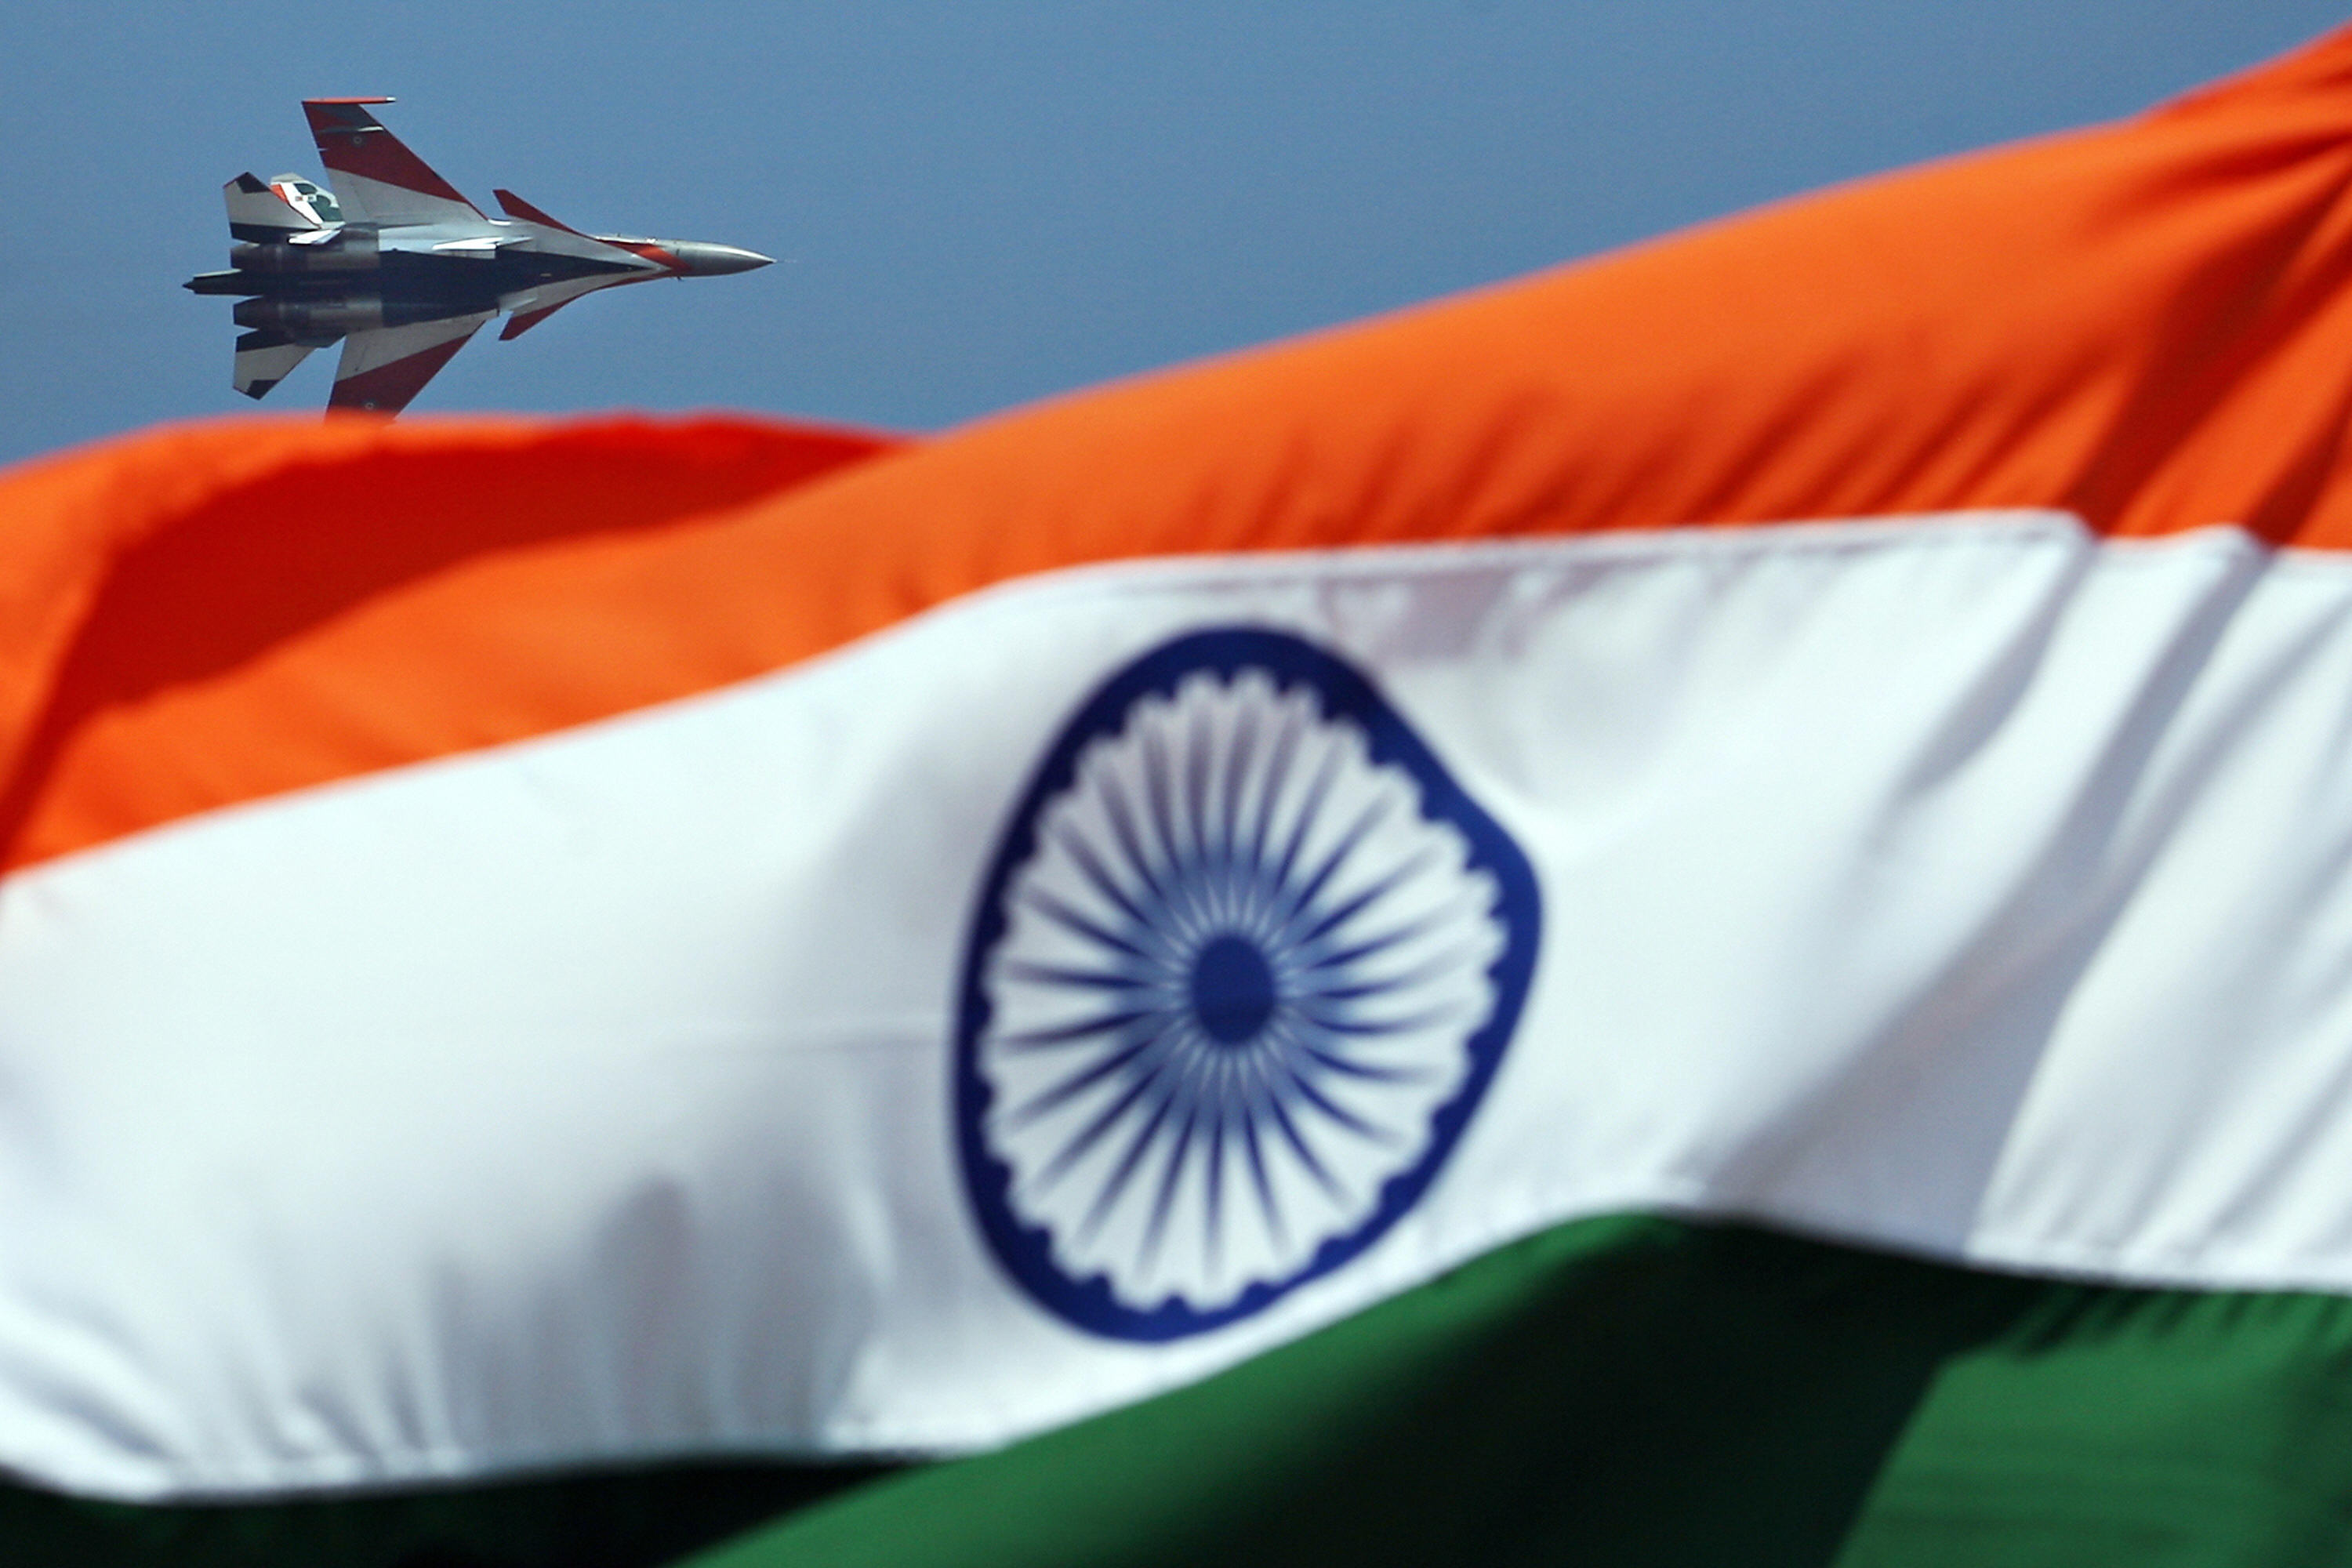 India's chances 'very good' on Wassenaar membership says Russian Federation